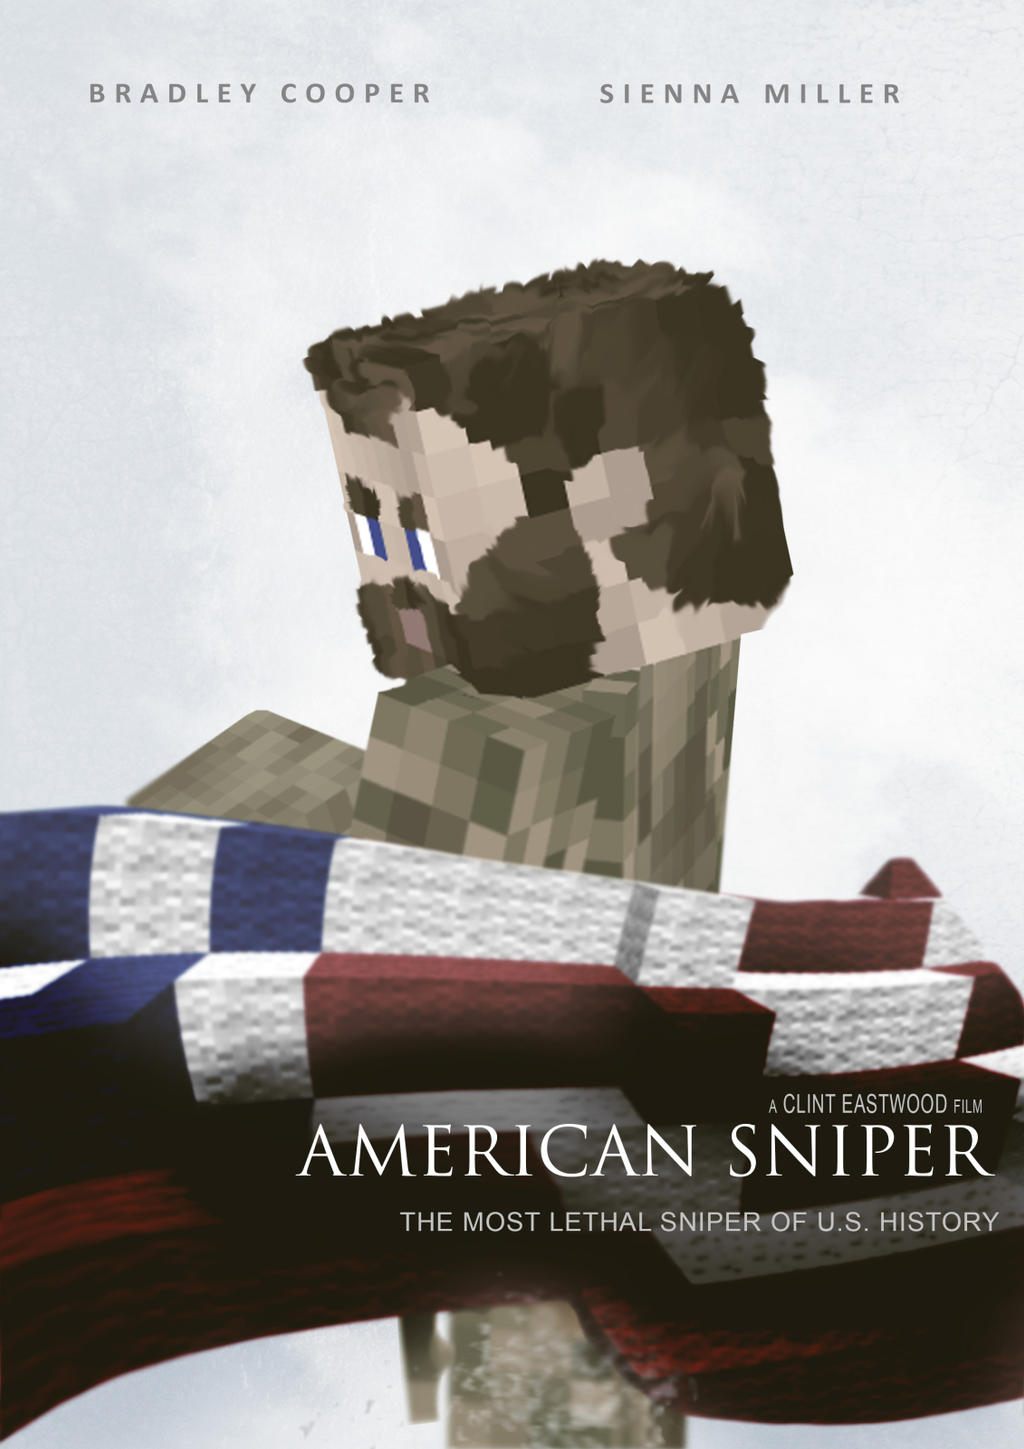 American Sniper - A Minecraft Poster by Artheleon on DeviantArt